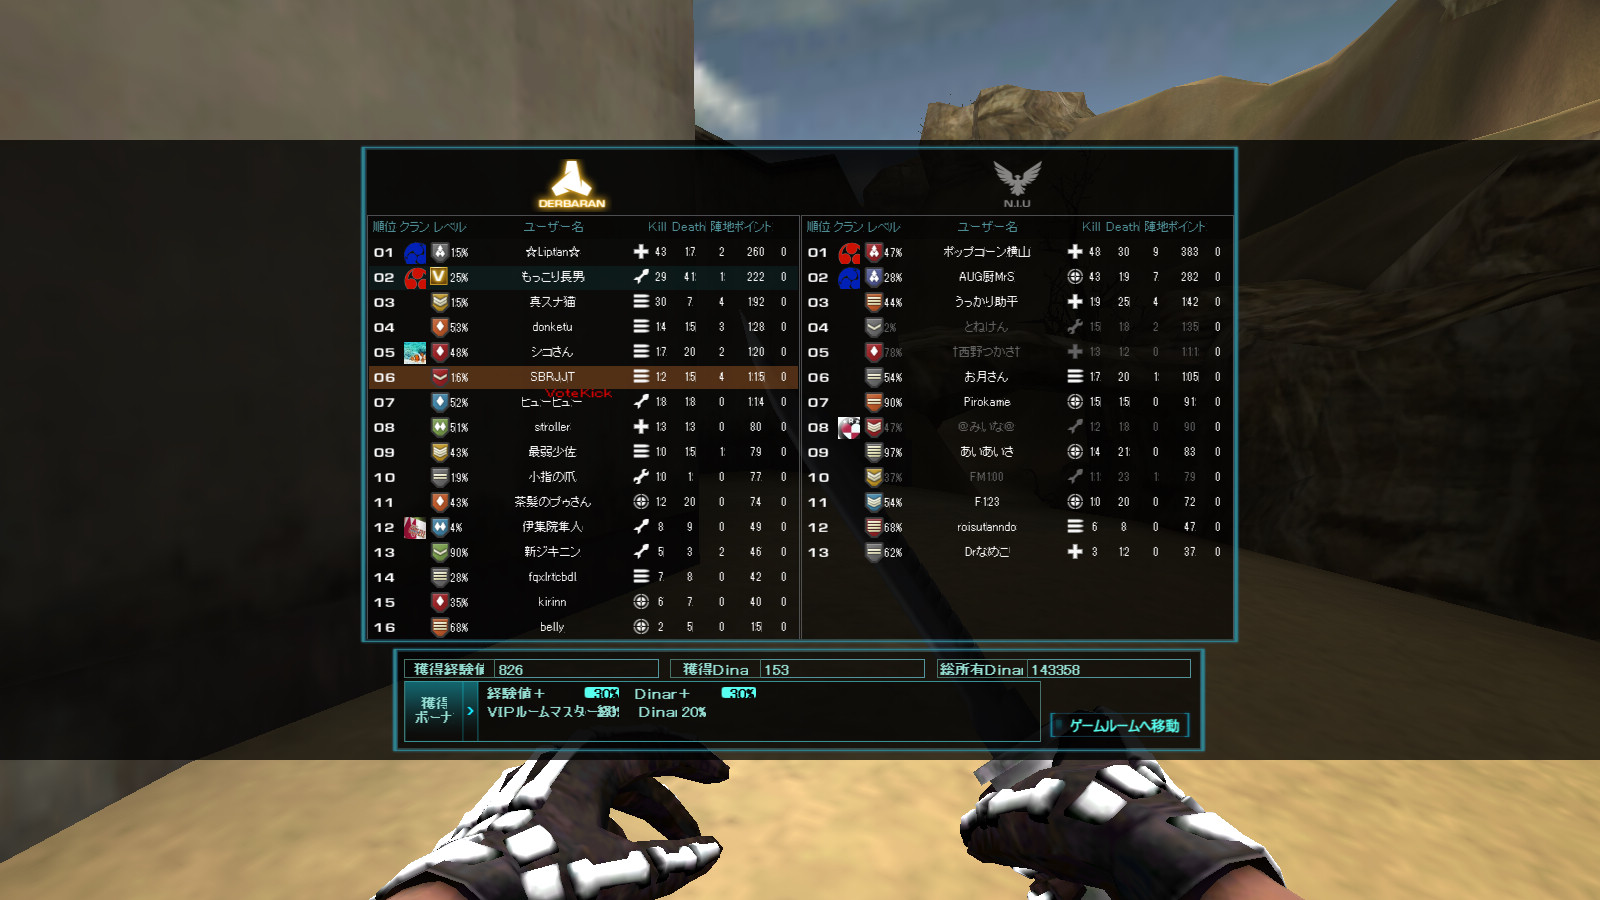 screenshot_408.jpg